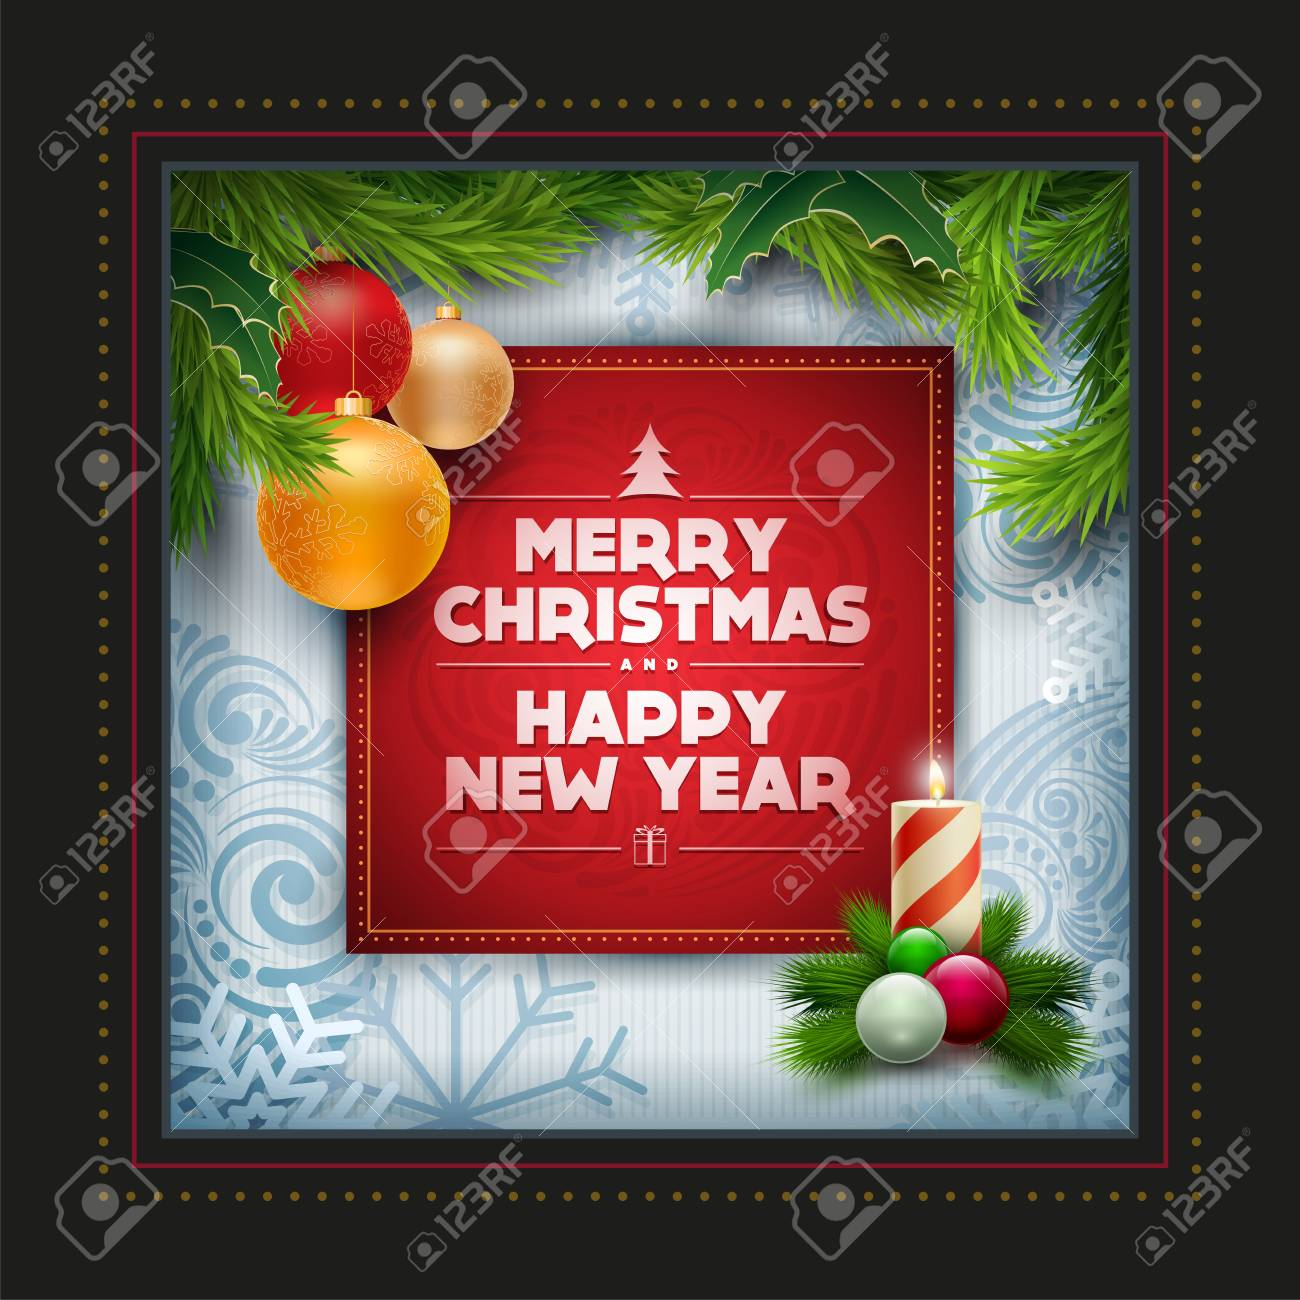 stock photo vector christmas and new year wishes on greeting card christmas related ornaments objects background elements are layered separately in